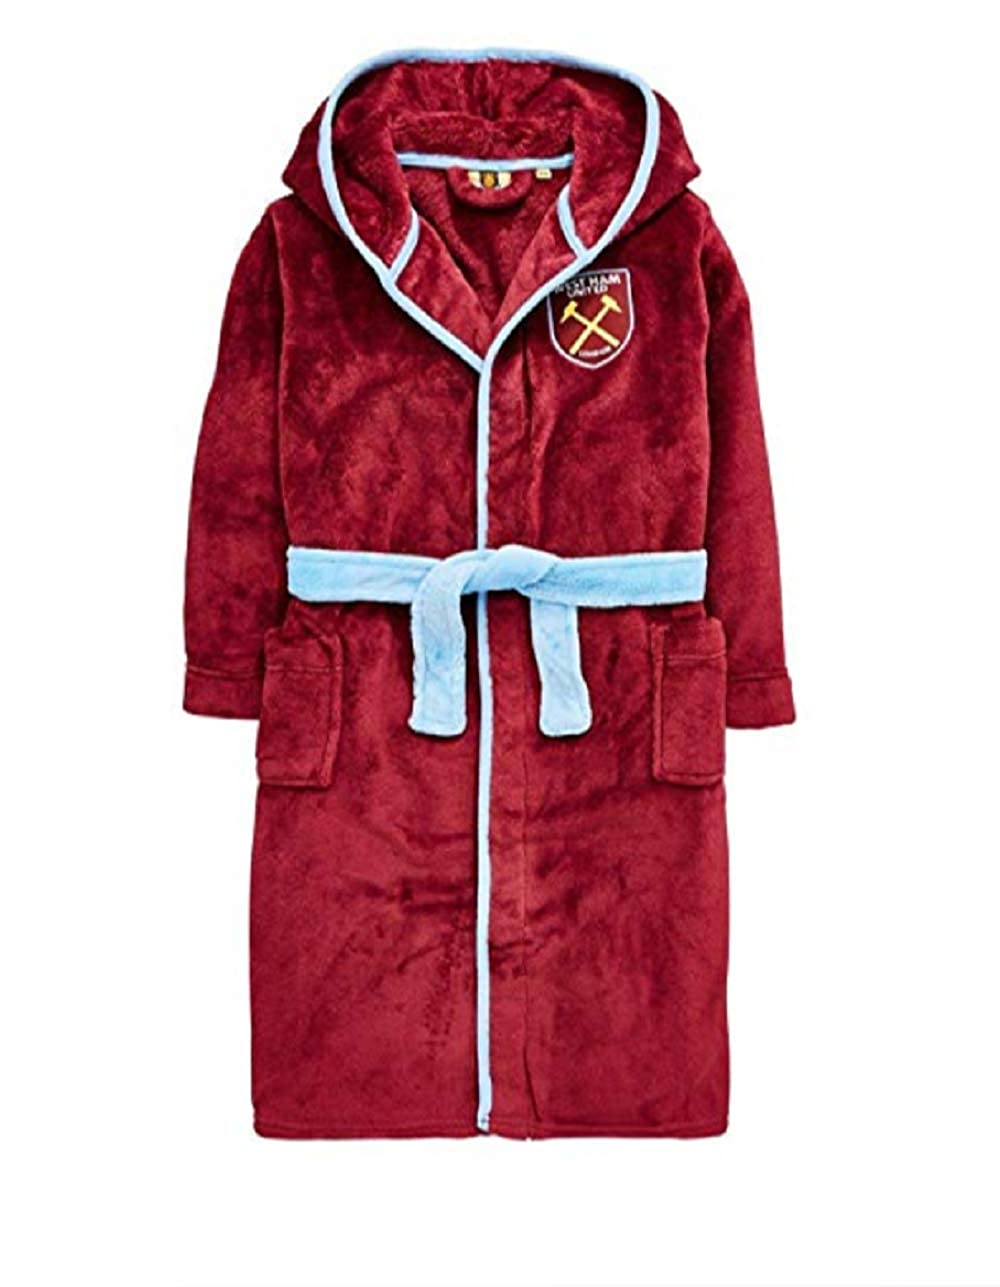 Unisex Football WHFC Dressing Gown Bathrobe - Small - X-Large WH31010